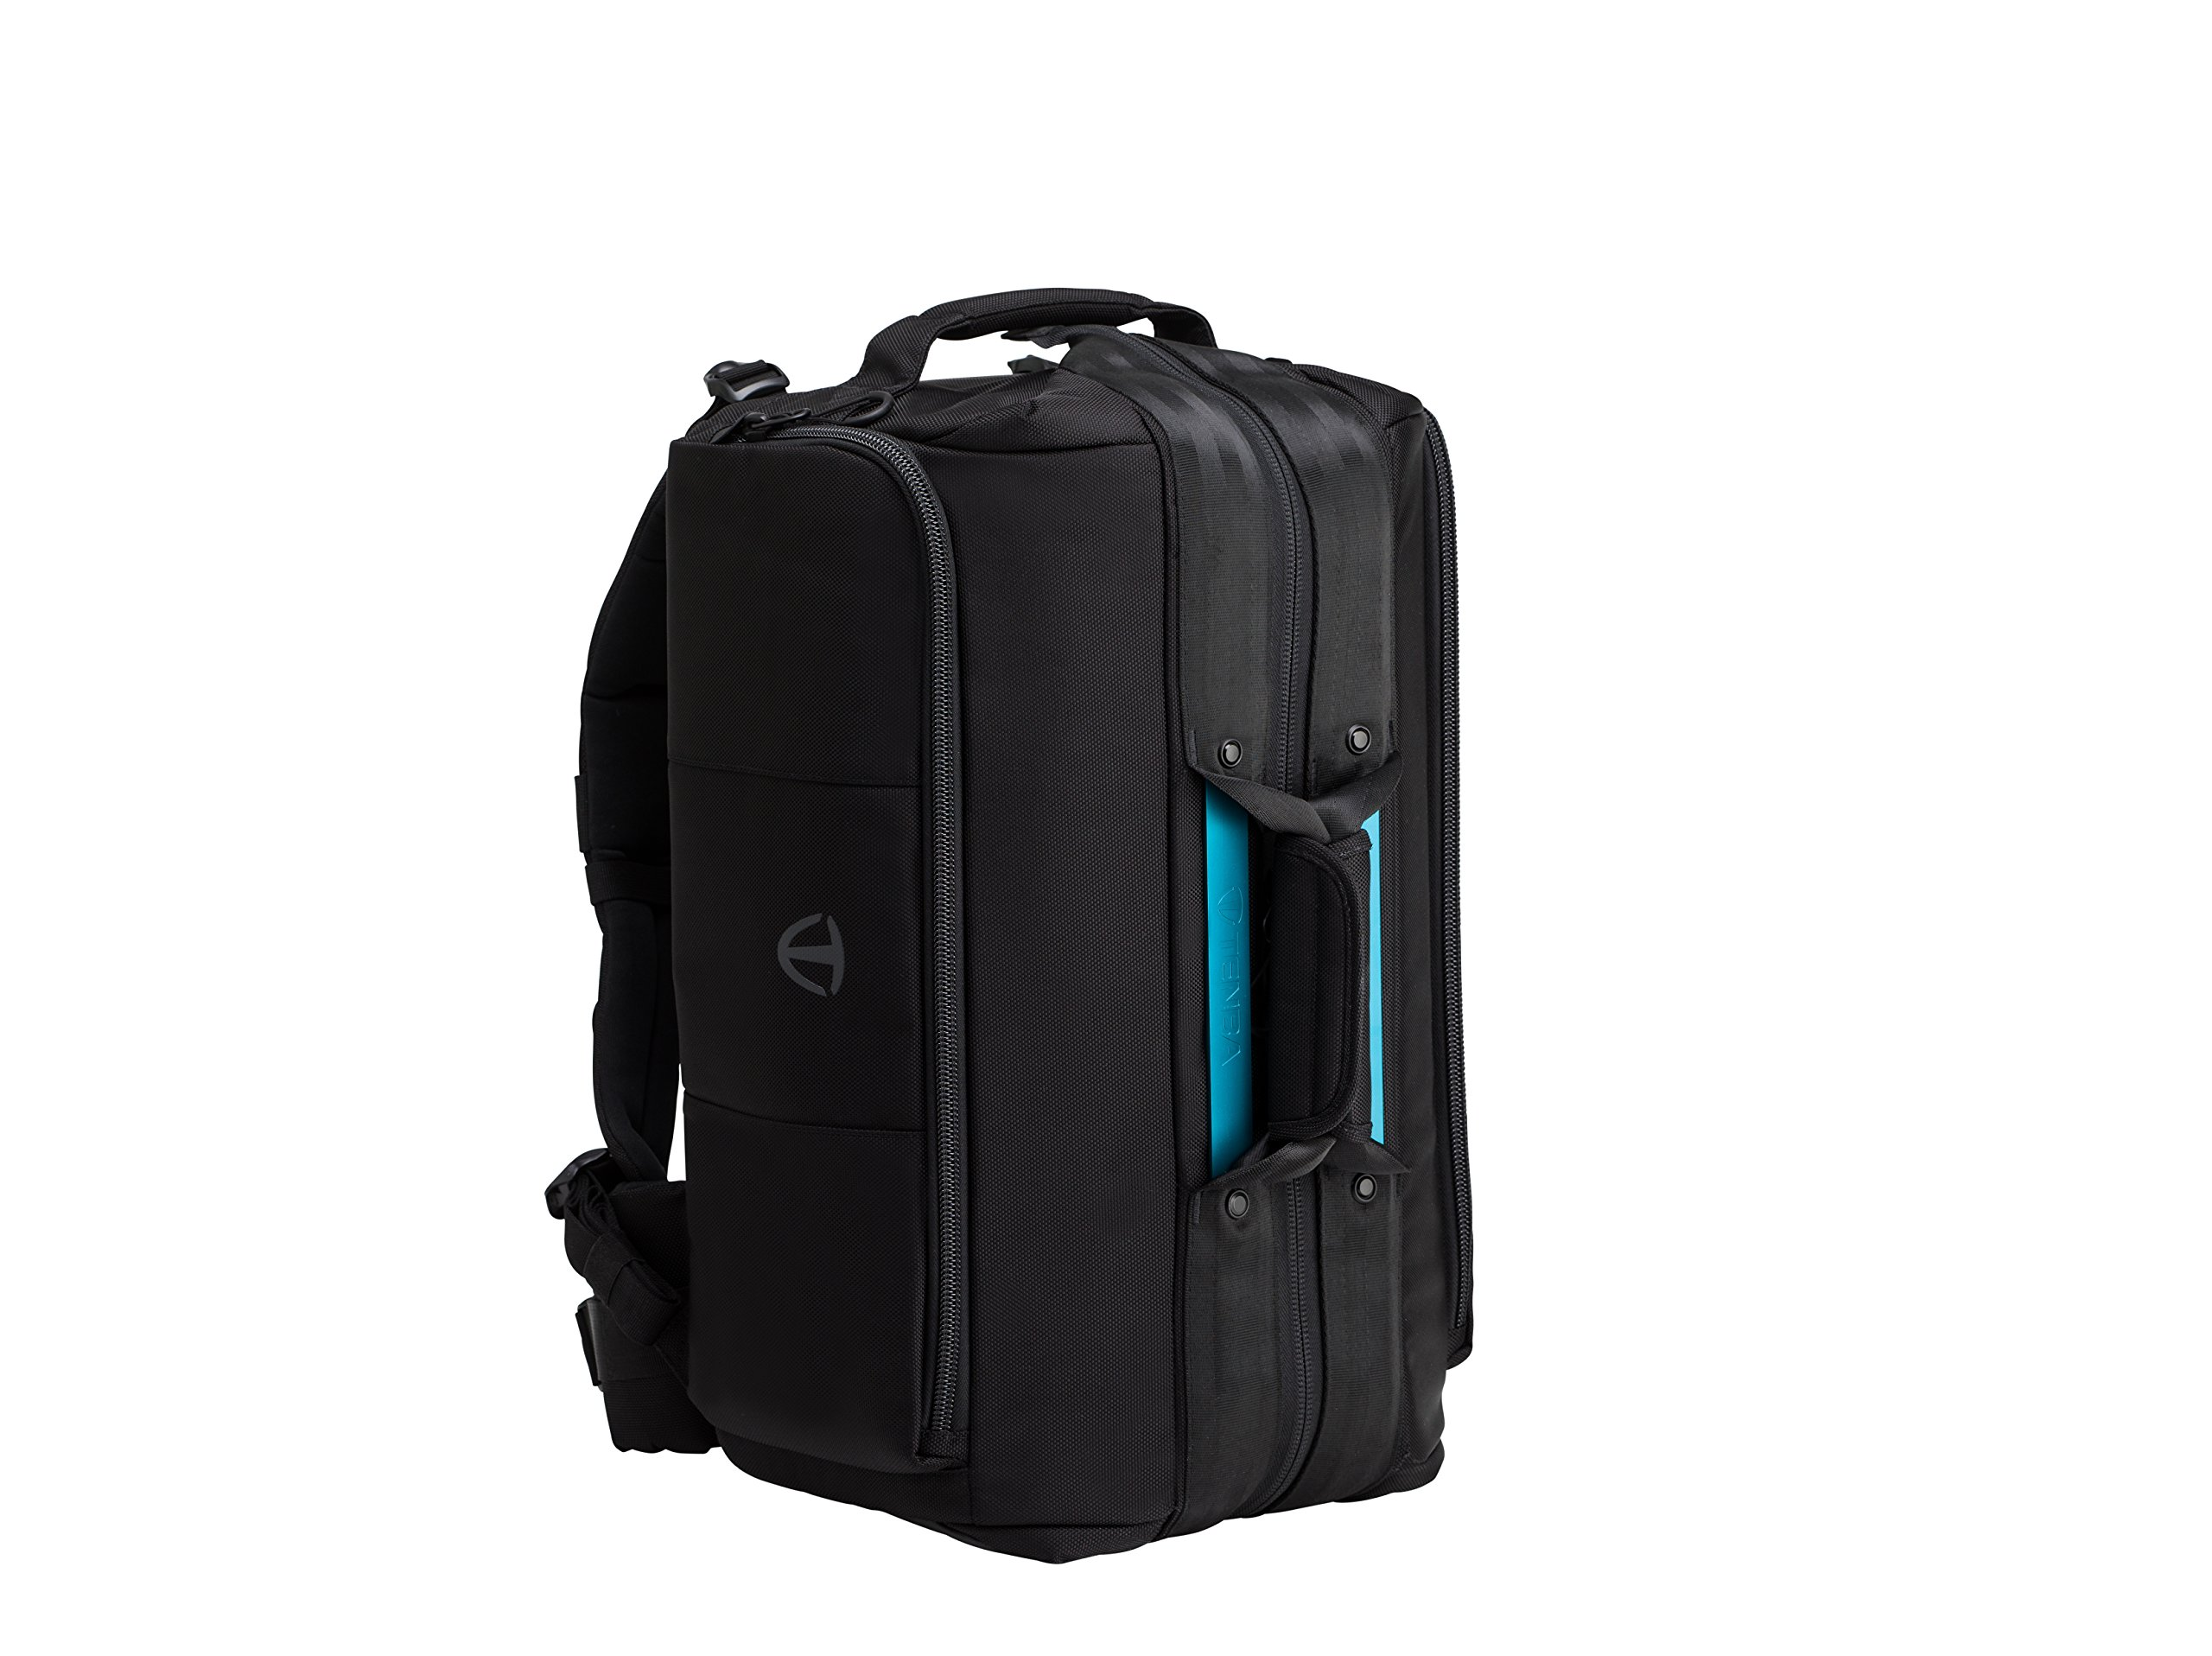 Tenba Cineluxe Backpack 21 (637-511)